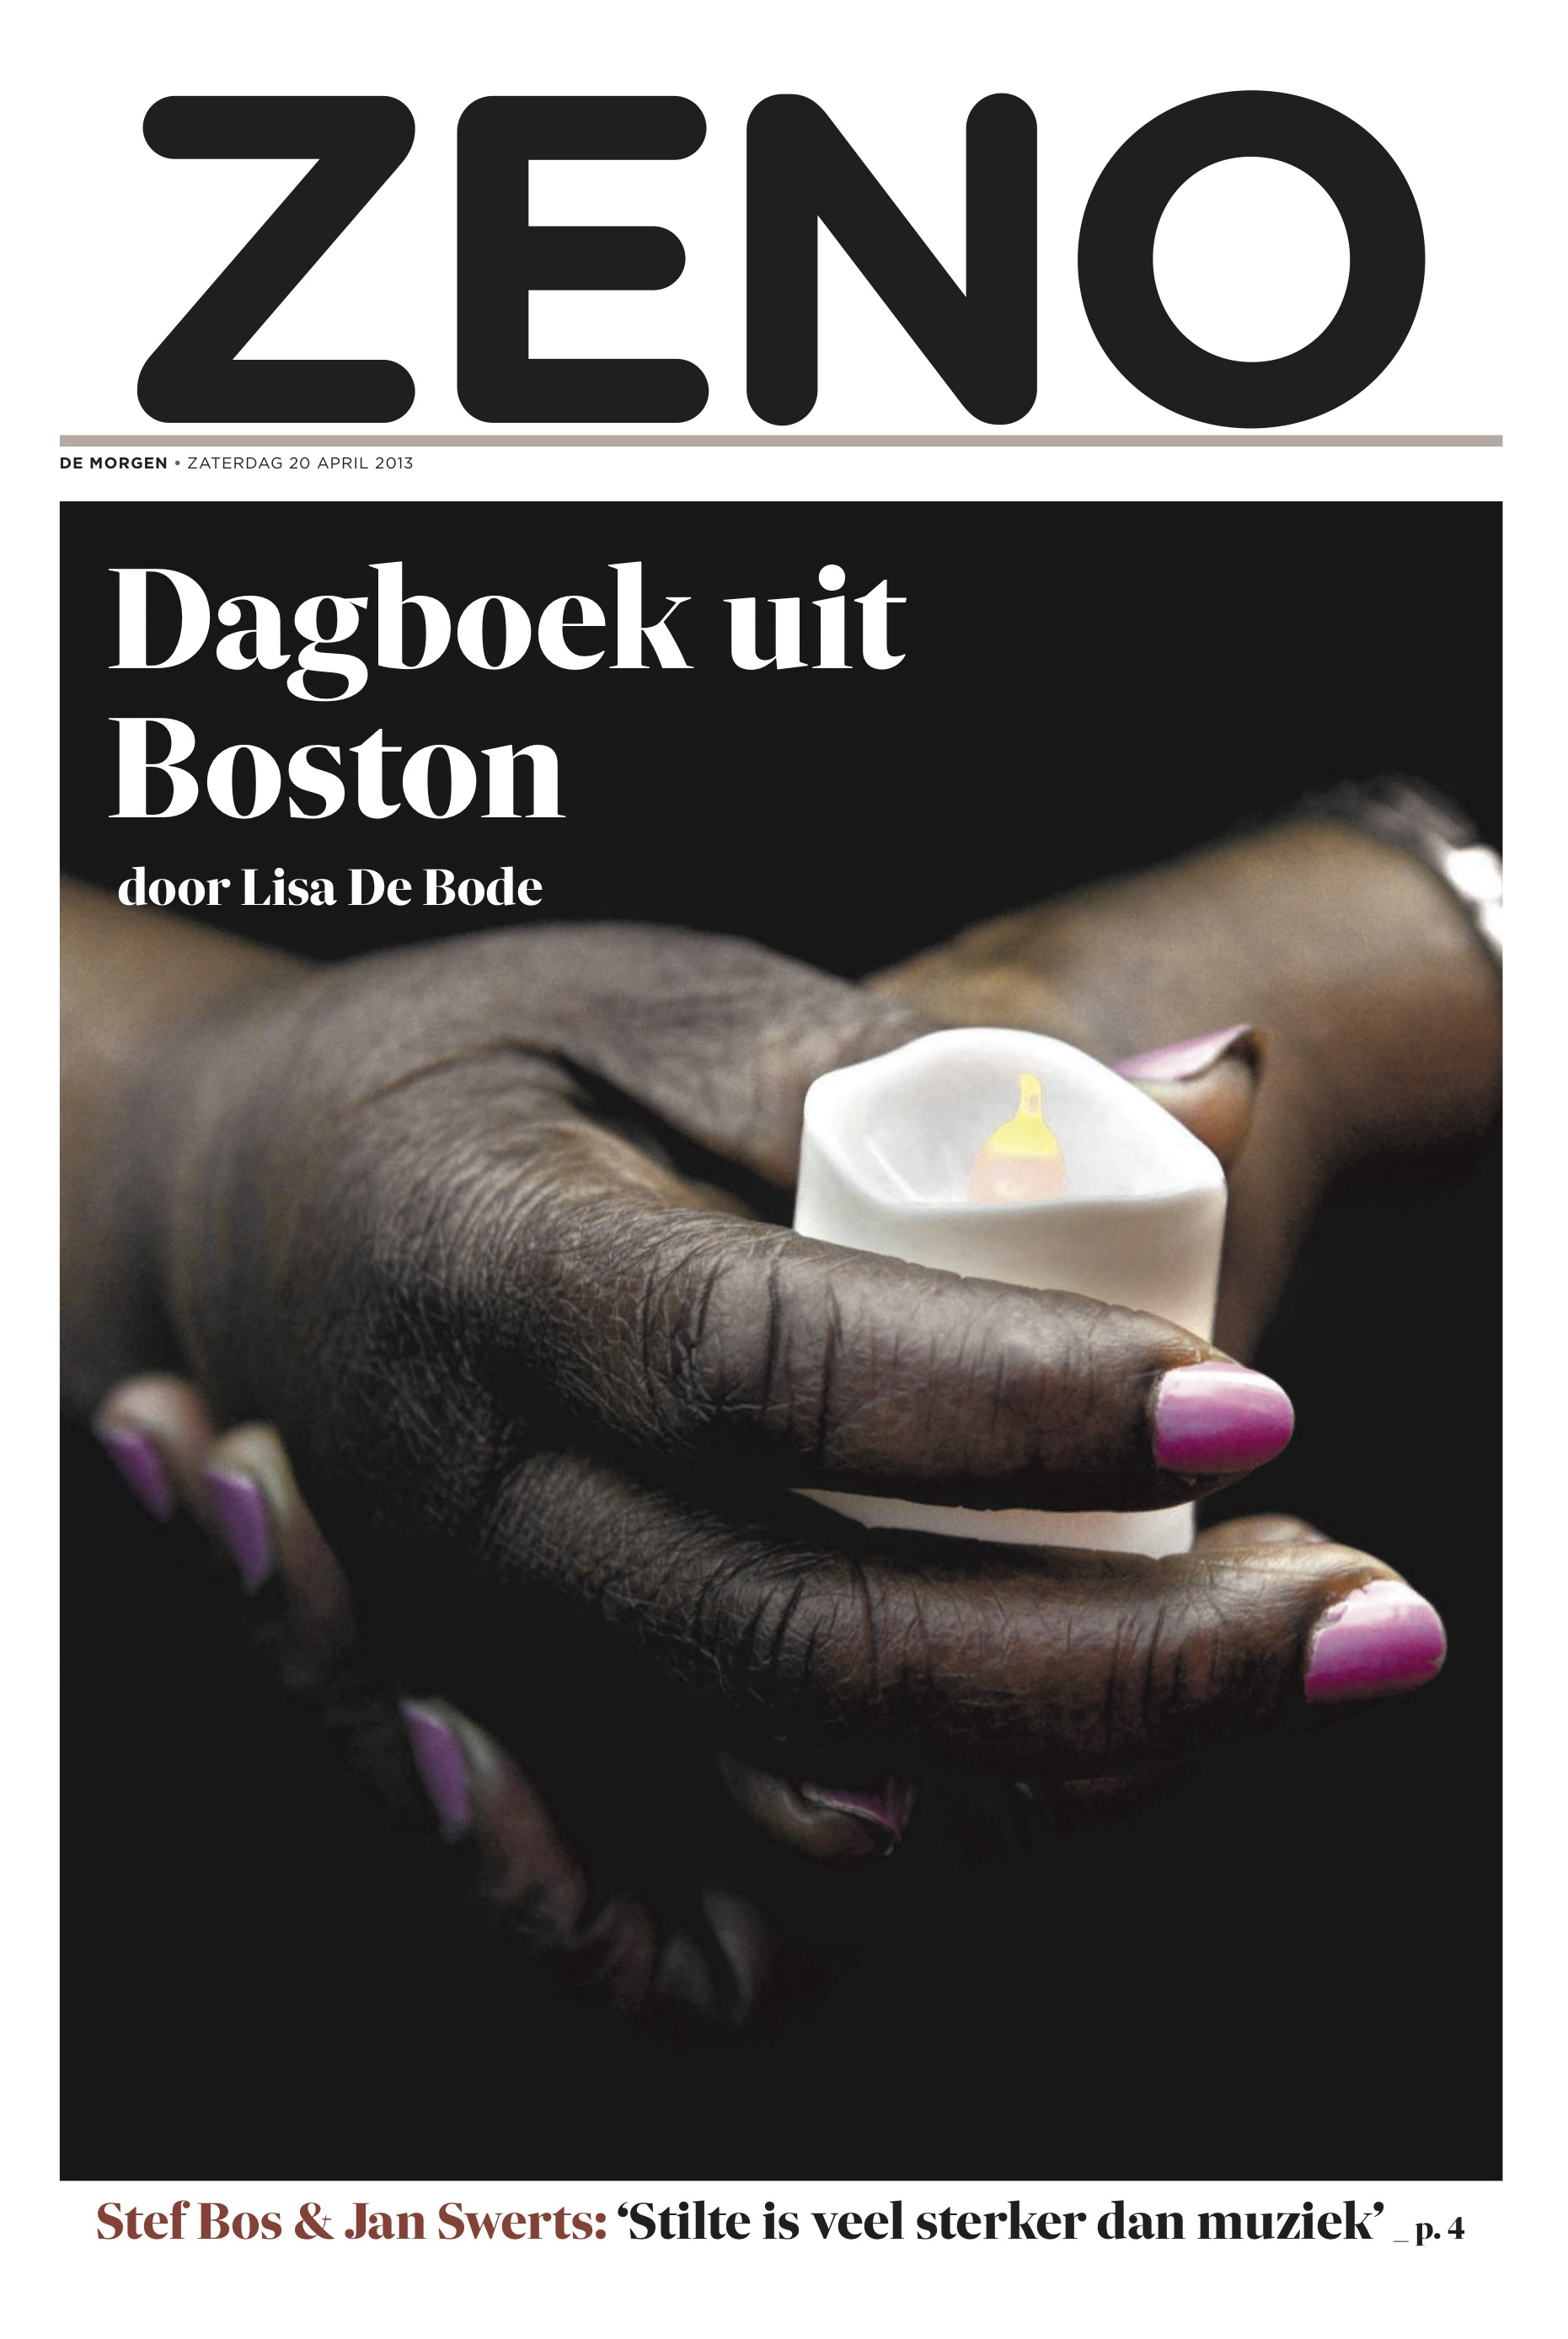 The Boston marathon bombing, Dagboek uit Boston